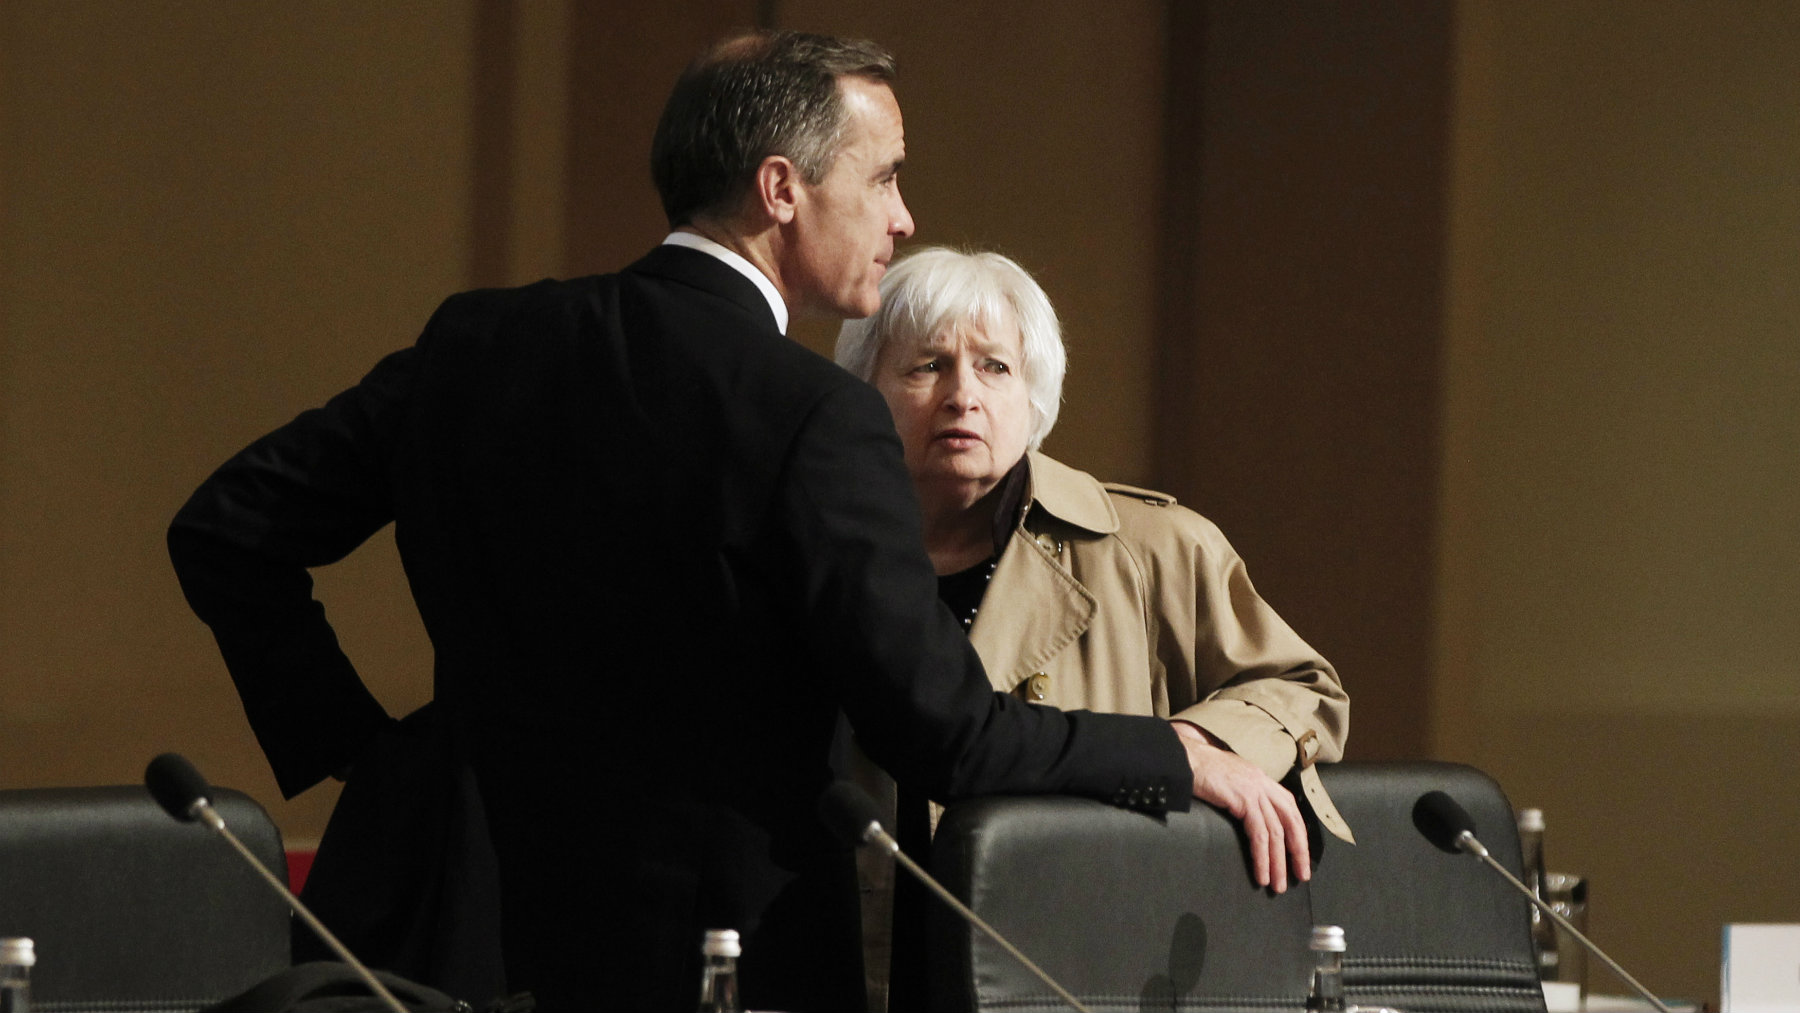 U.S. Federal Reserve Board Chair Janet Yellen (R) talks with Mark Carney, Governor of the Bank of England, during the G20 finance ministers and central bank governors meeting in Istanbul February 10, 2015. REUTERS/Osman Orsal (TURKEY - Tags: POLITICS BUSINESS)